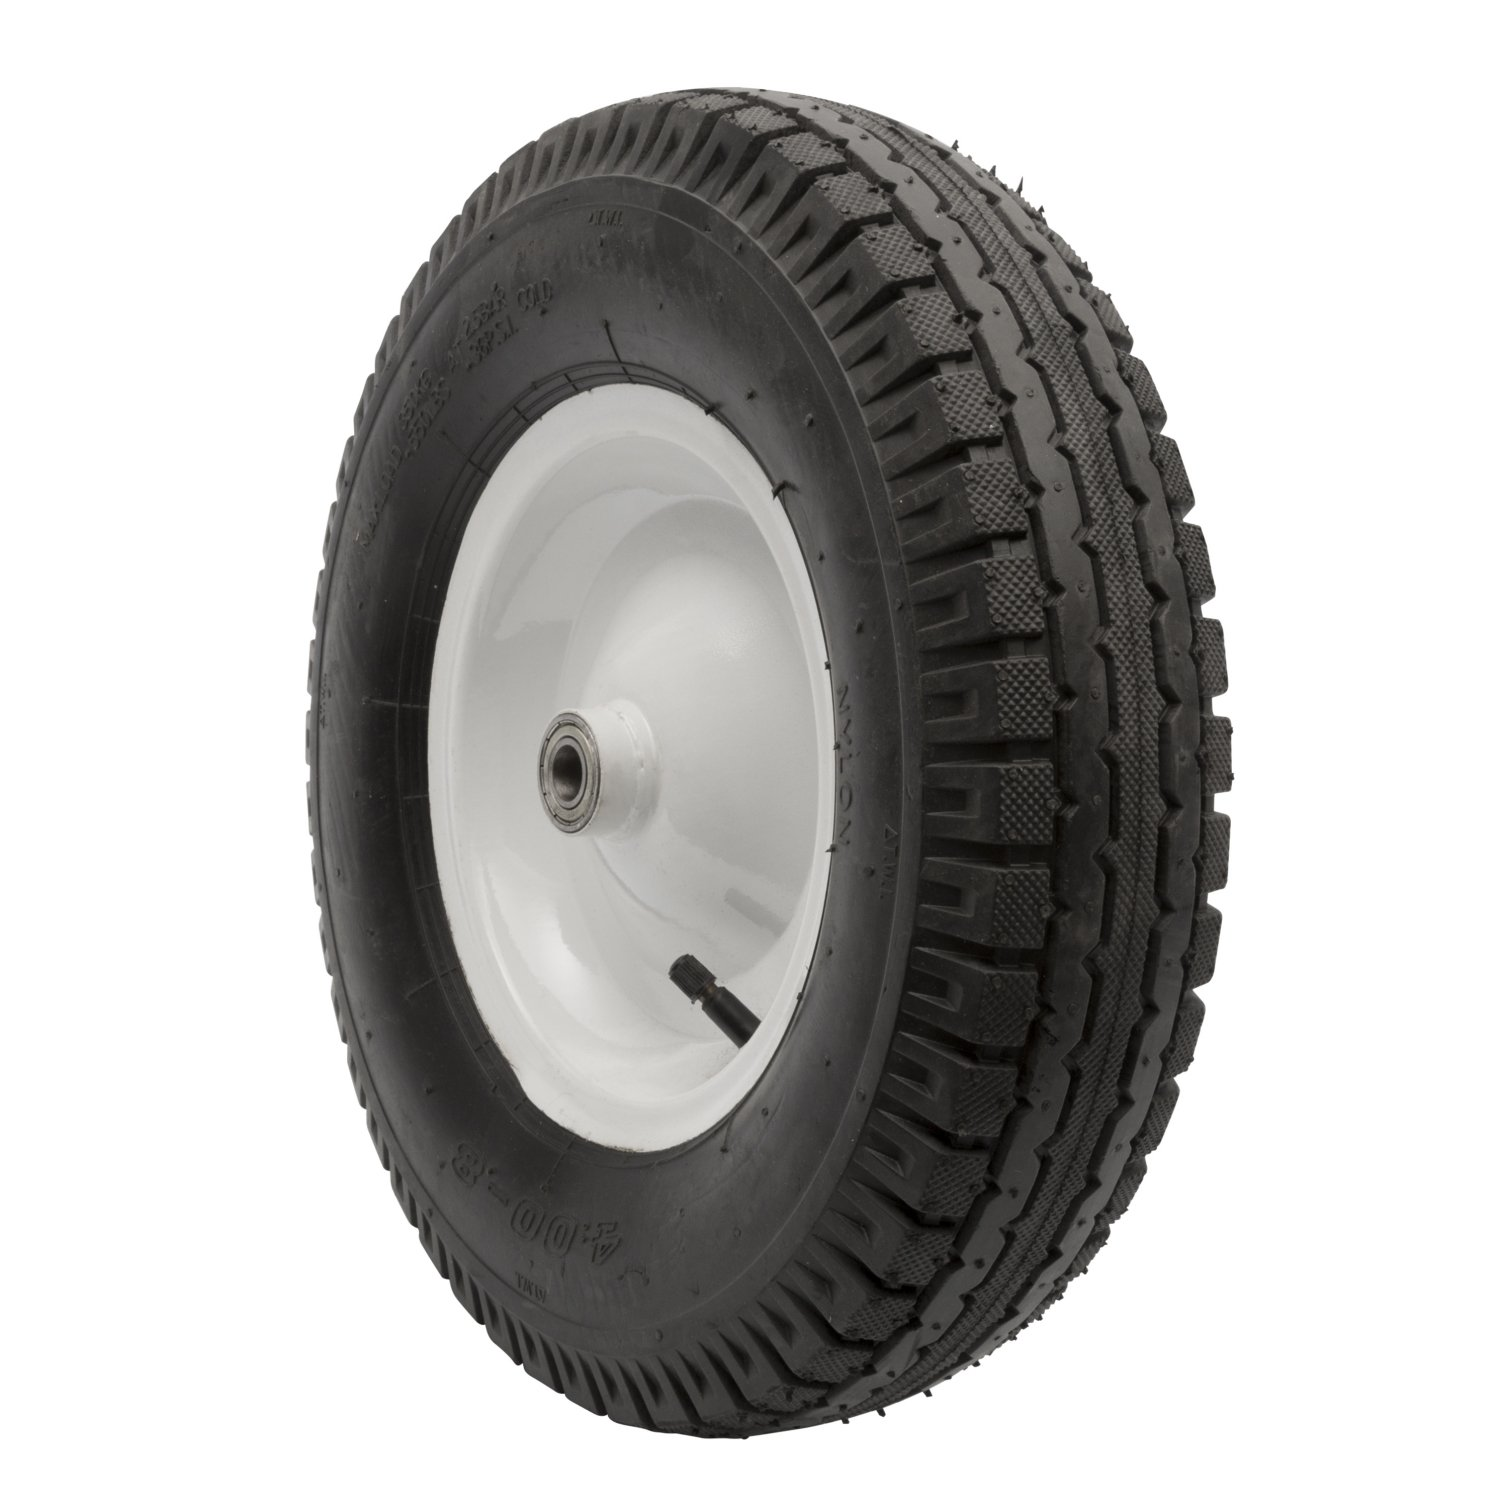 Kimpex Replacement Wheel for Dolly X-PRO